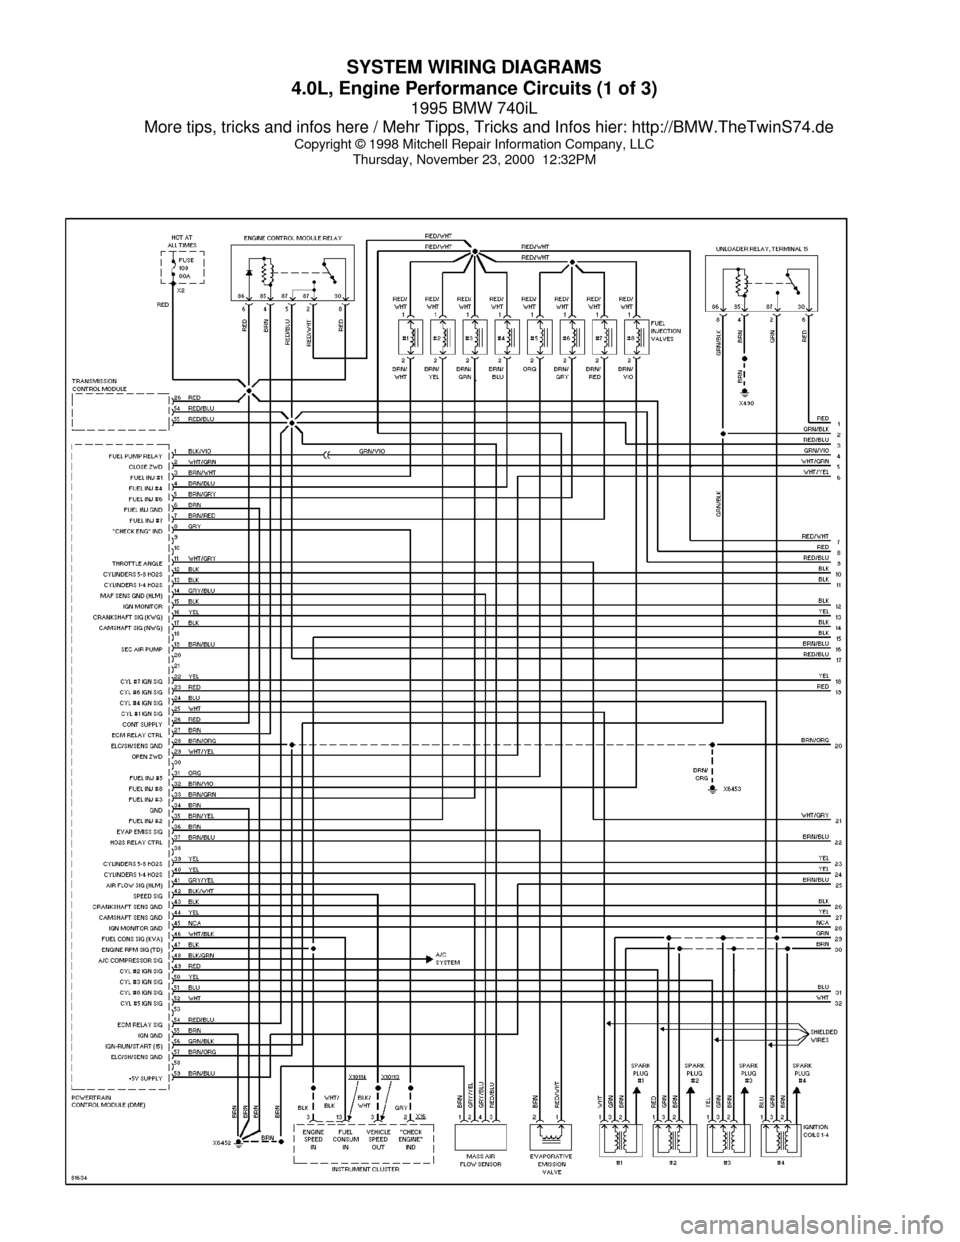 Bmw Factory Wiring Diagrams 1998 Schematics Data Fuse Box 740il Diagram 29 Images Gsmportal Co 2001 325i Radio Wire 1974 2002 Auto